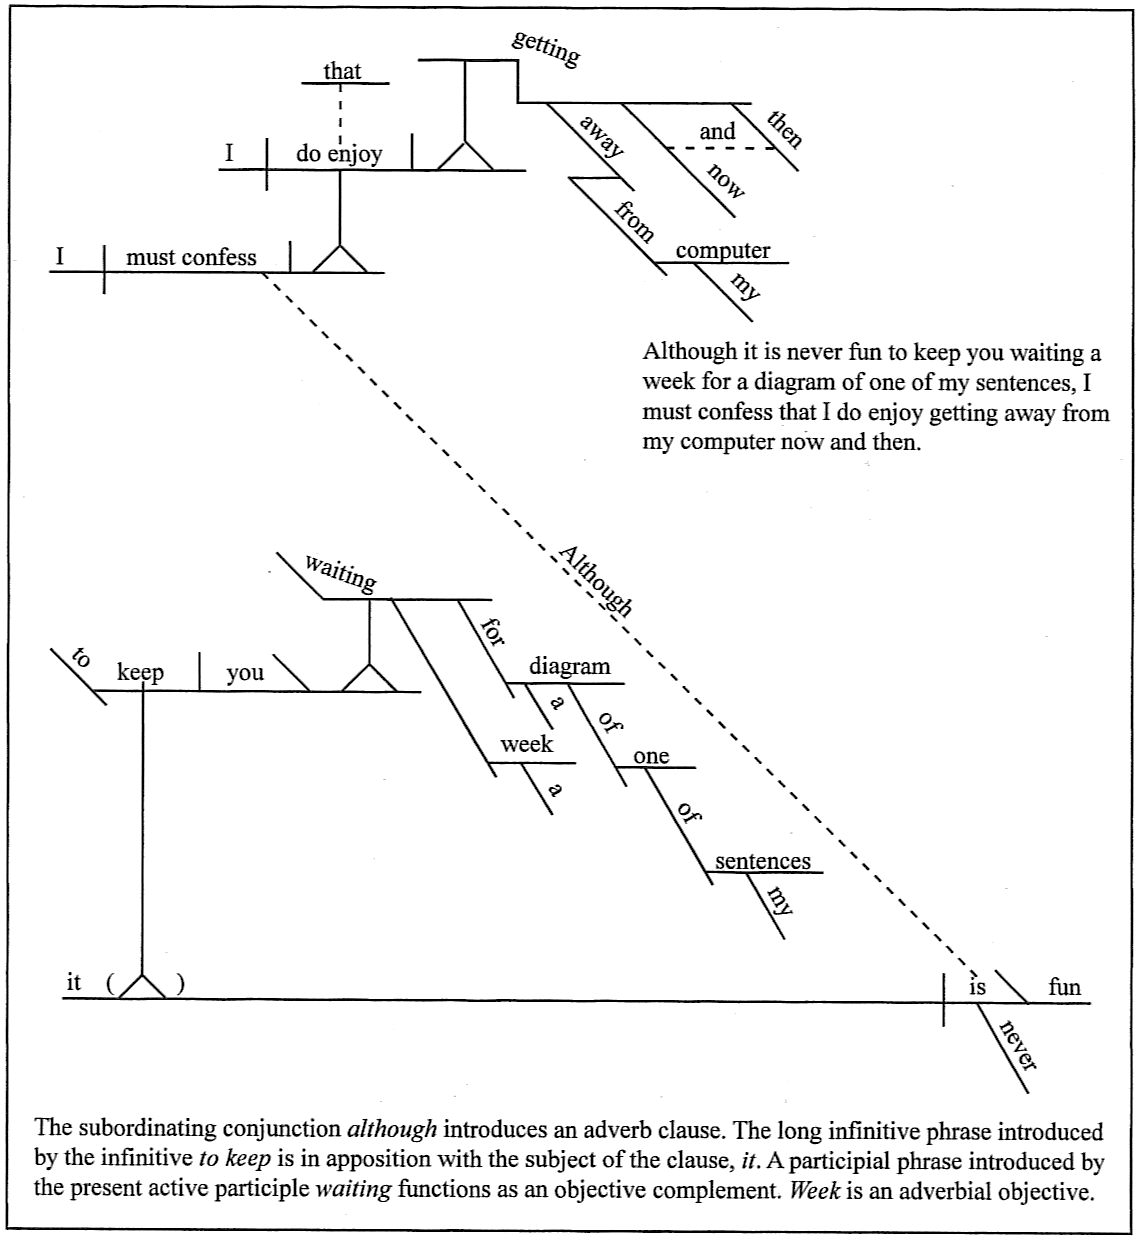 diagram my sentences 17th edition consumer unit wiring sentence diagramming